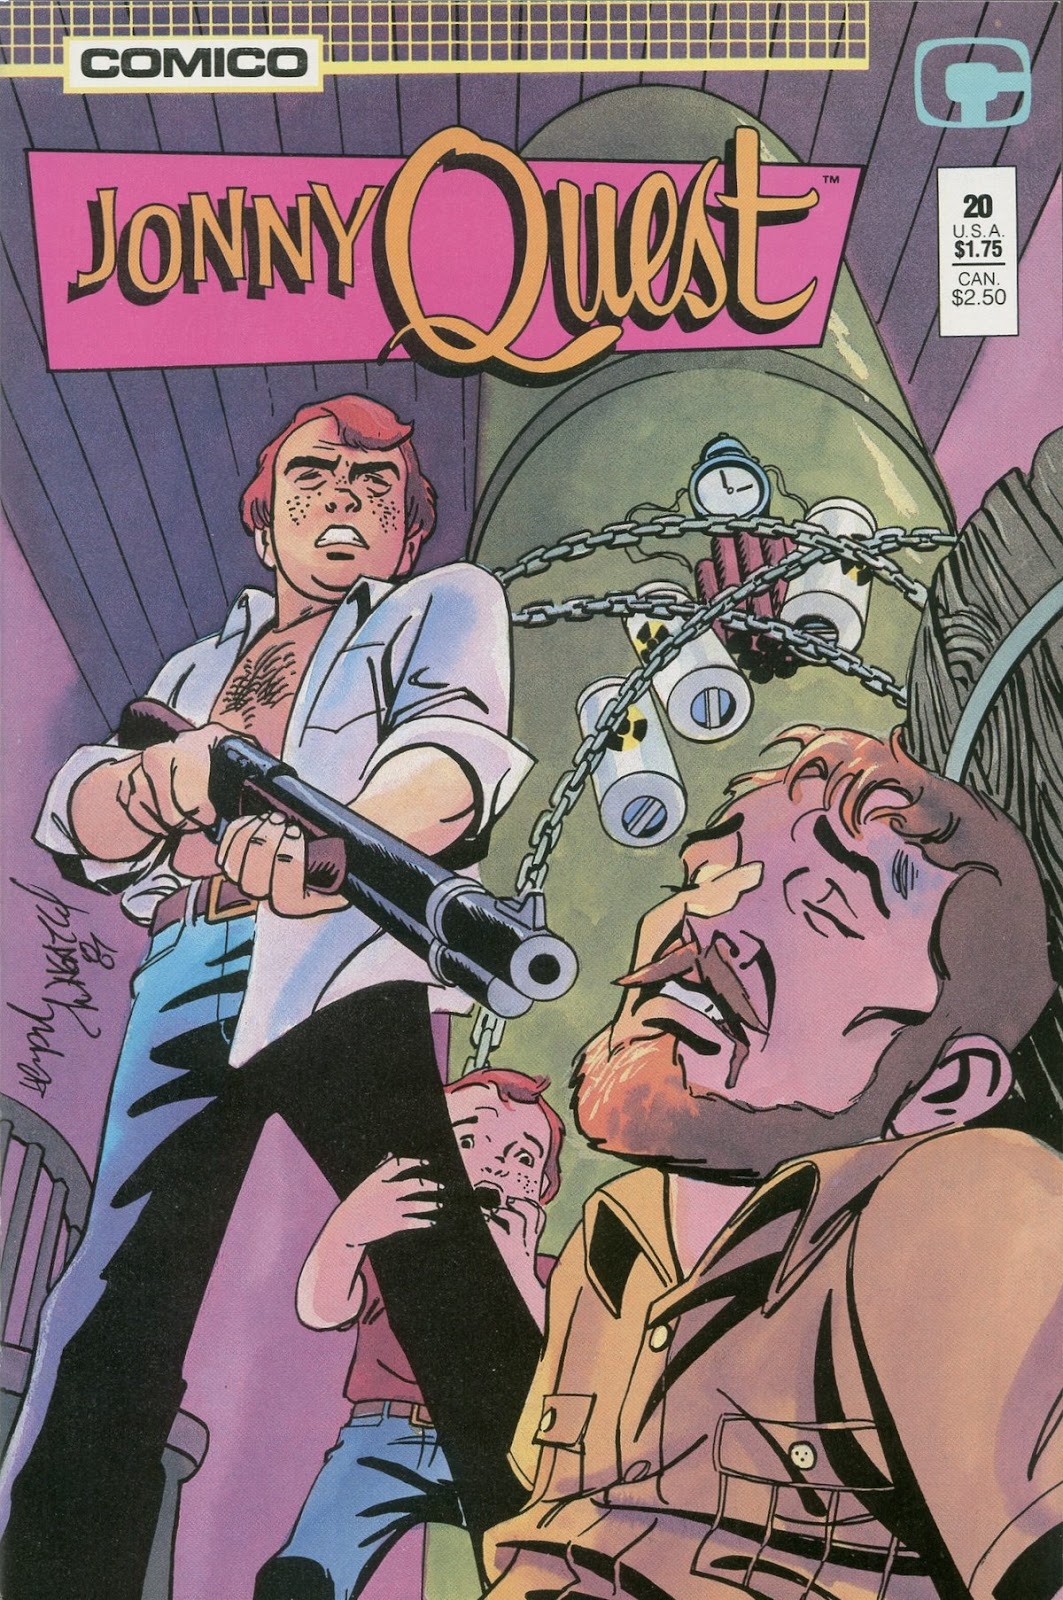 Jonny Quest (1986) issue 20 - Page 1